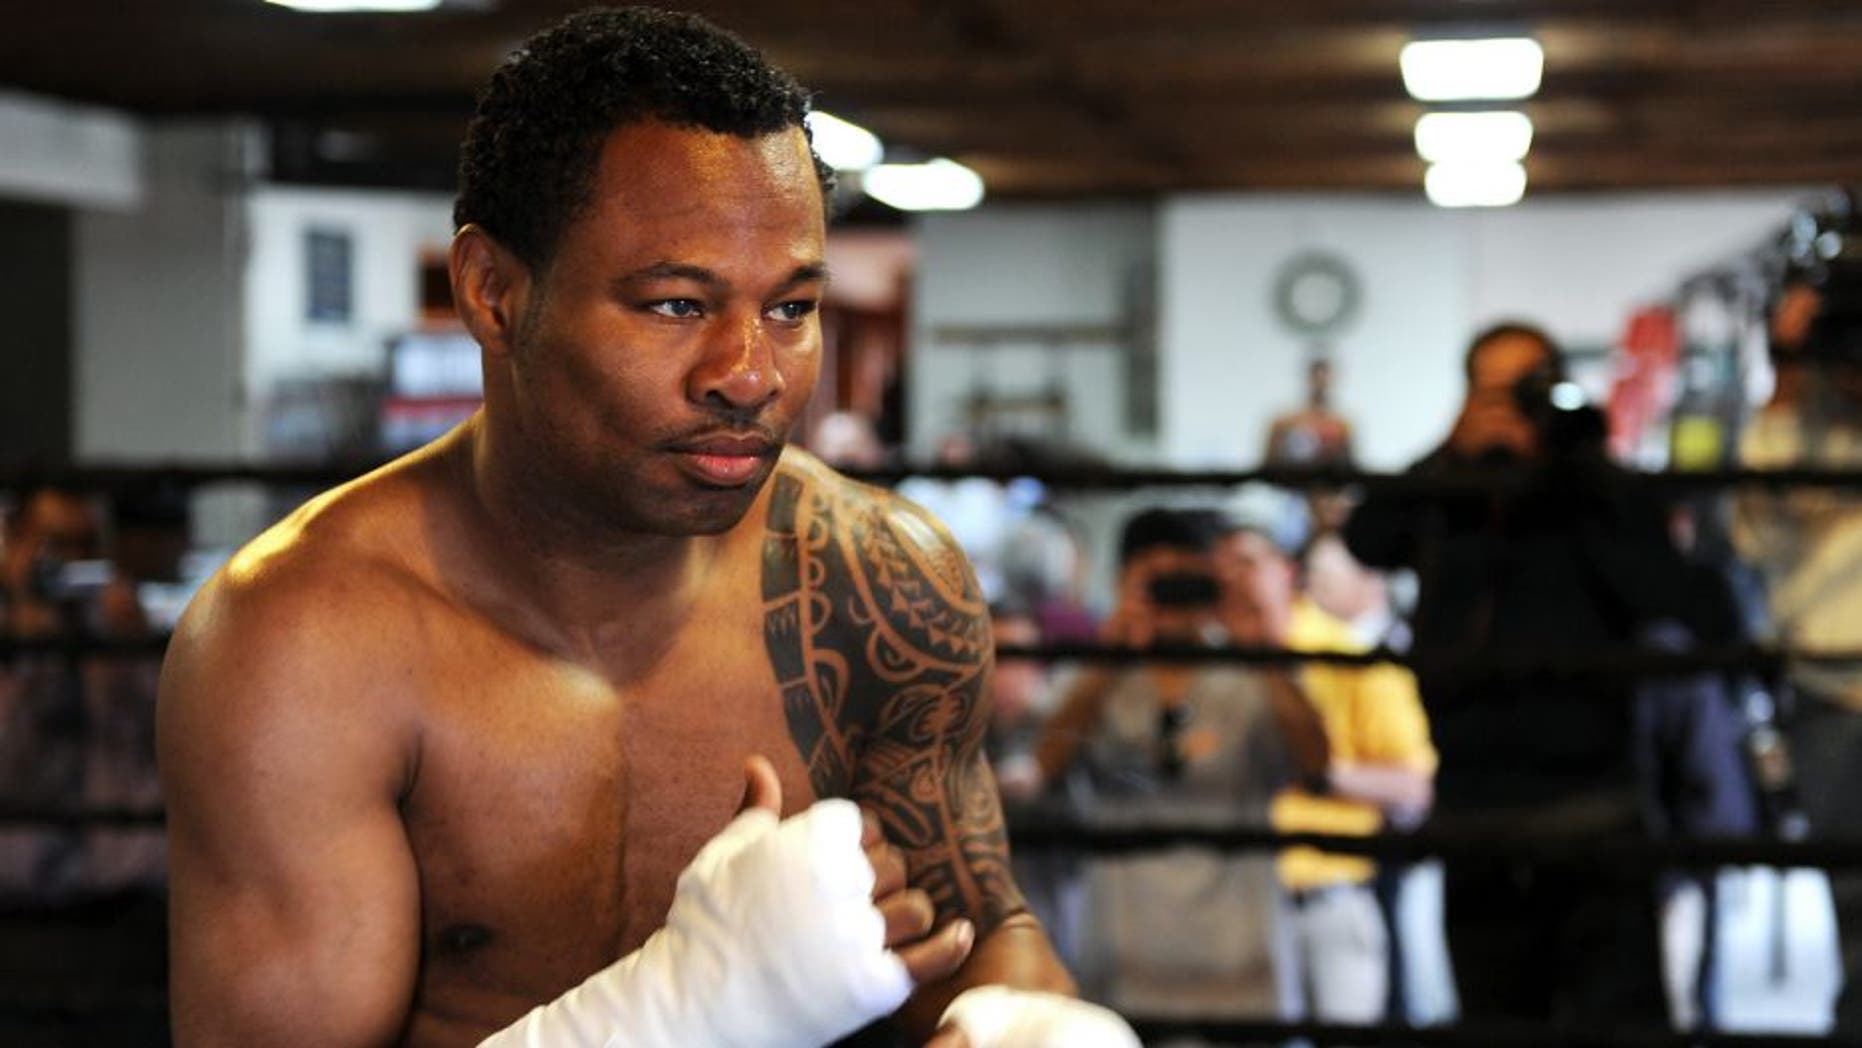 Five-Time World Champion Sugar Shane Mosley trains on April 12, 2010 in Pasadena, California during a media workout in preparation for his fight against Six-Time World Champion Floyd Mayweather in Las Vegas next May 1, 2010. AFP PHOTO / GABRIEL BOUYS (Photo credit should read GABRIEL BOUYS/AFP/Getty Images)